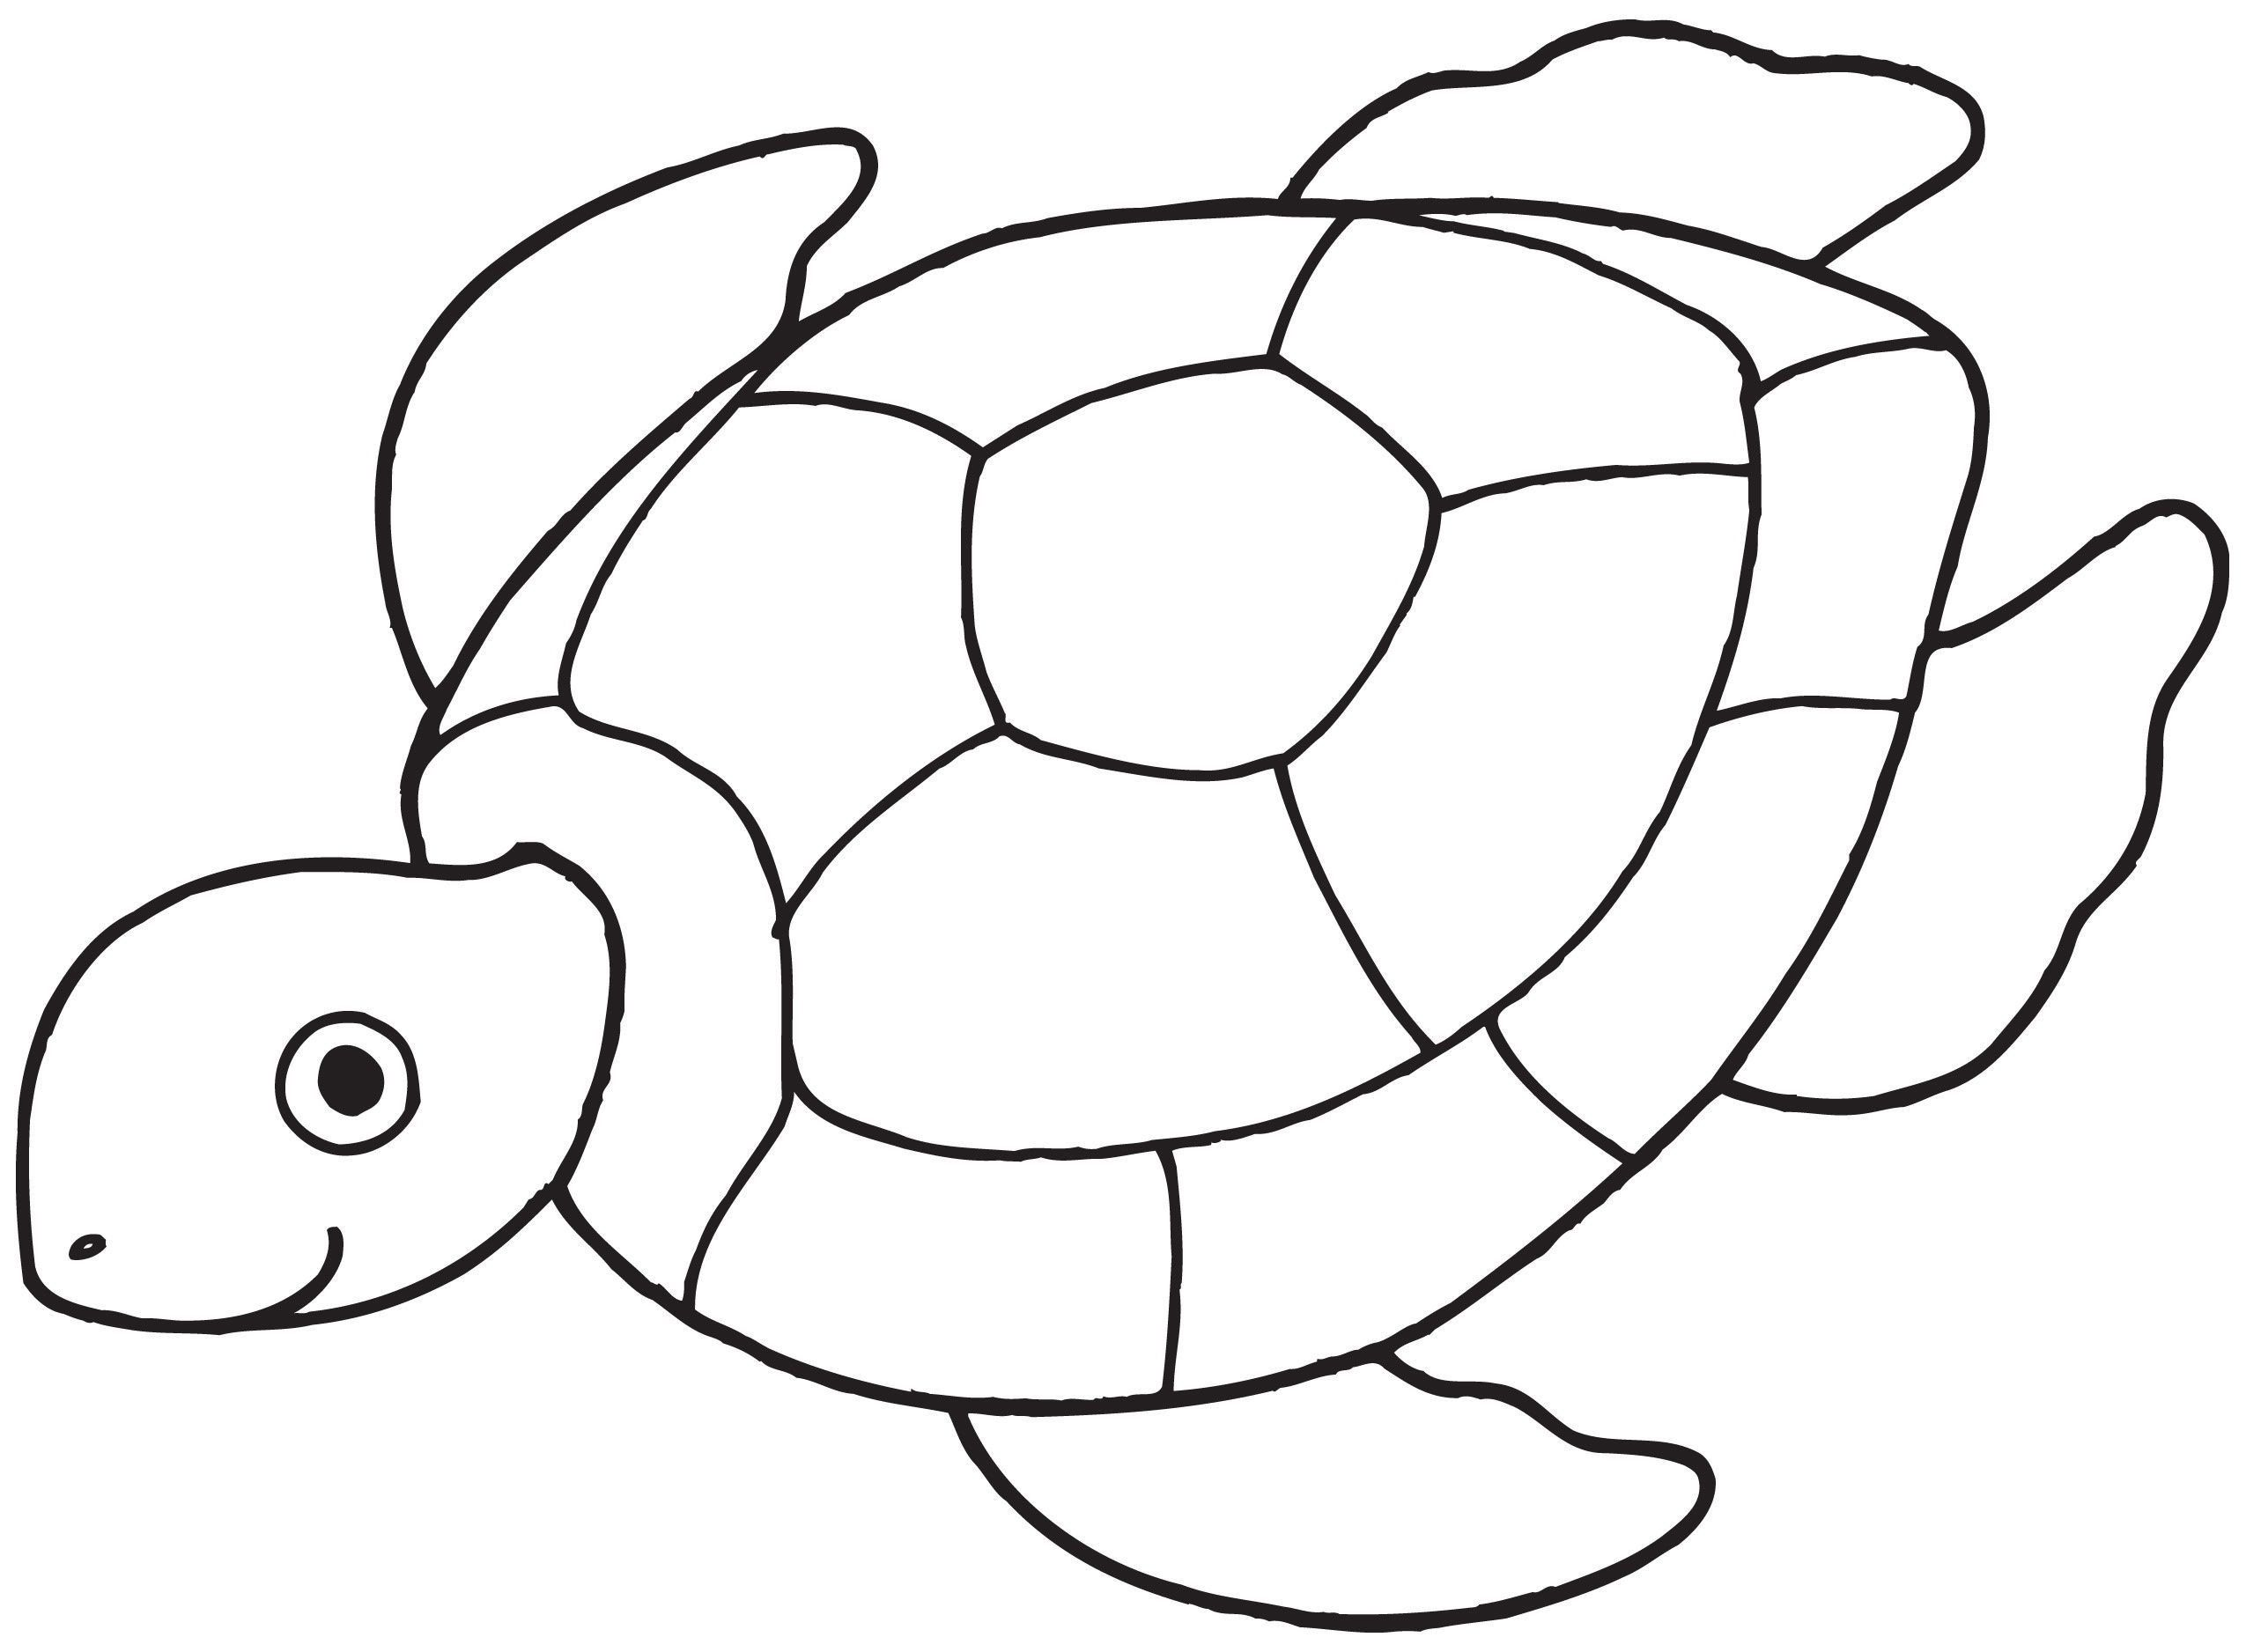 Sea Turtle Coloring Page Awesome Sea Turtle Coloring Page